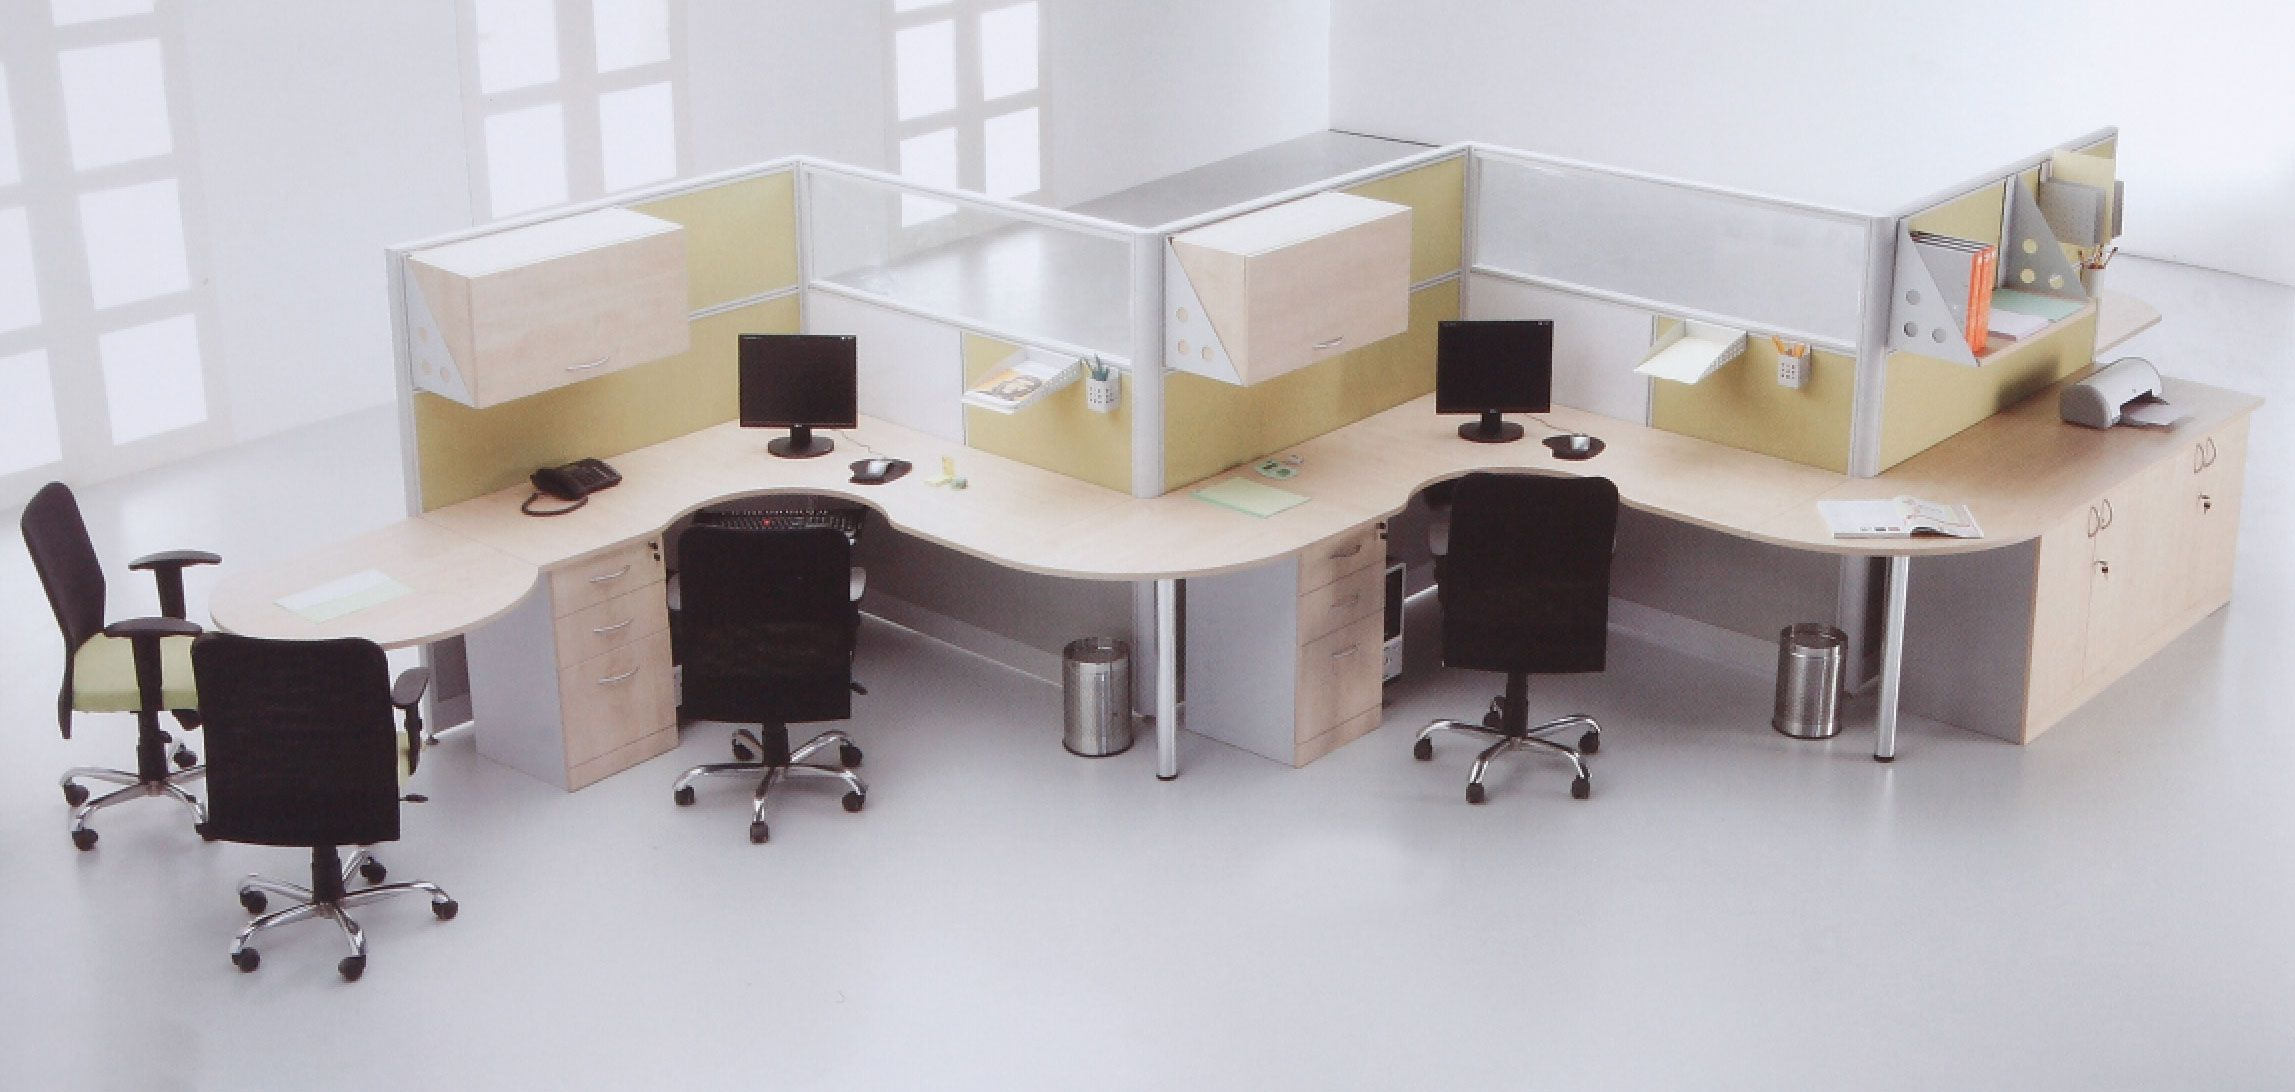 modular office workstation furniture italian design   Designer Workstation. modular office workstation furniture italian design   Designer